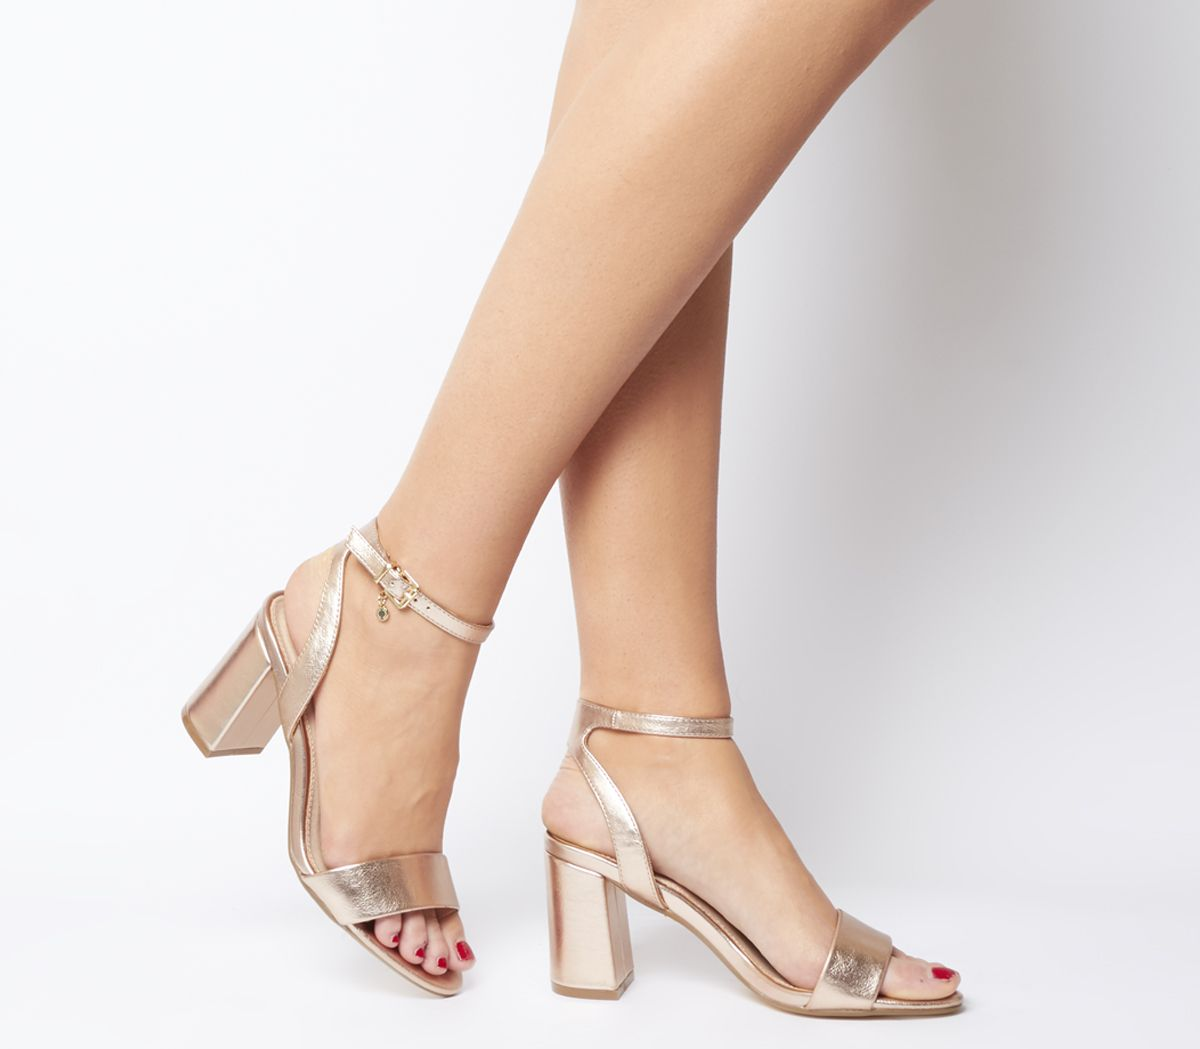 6c87c1811 Office Marigold Strappy Heels Rose Gold Textile - Mid Heels